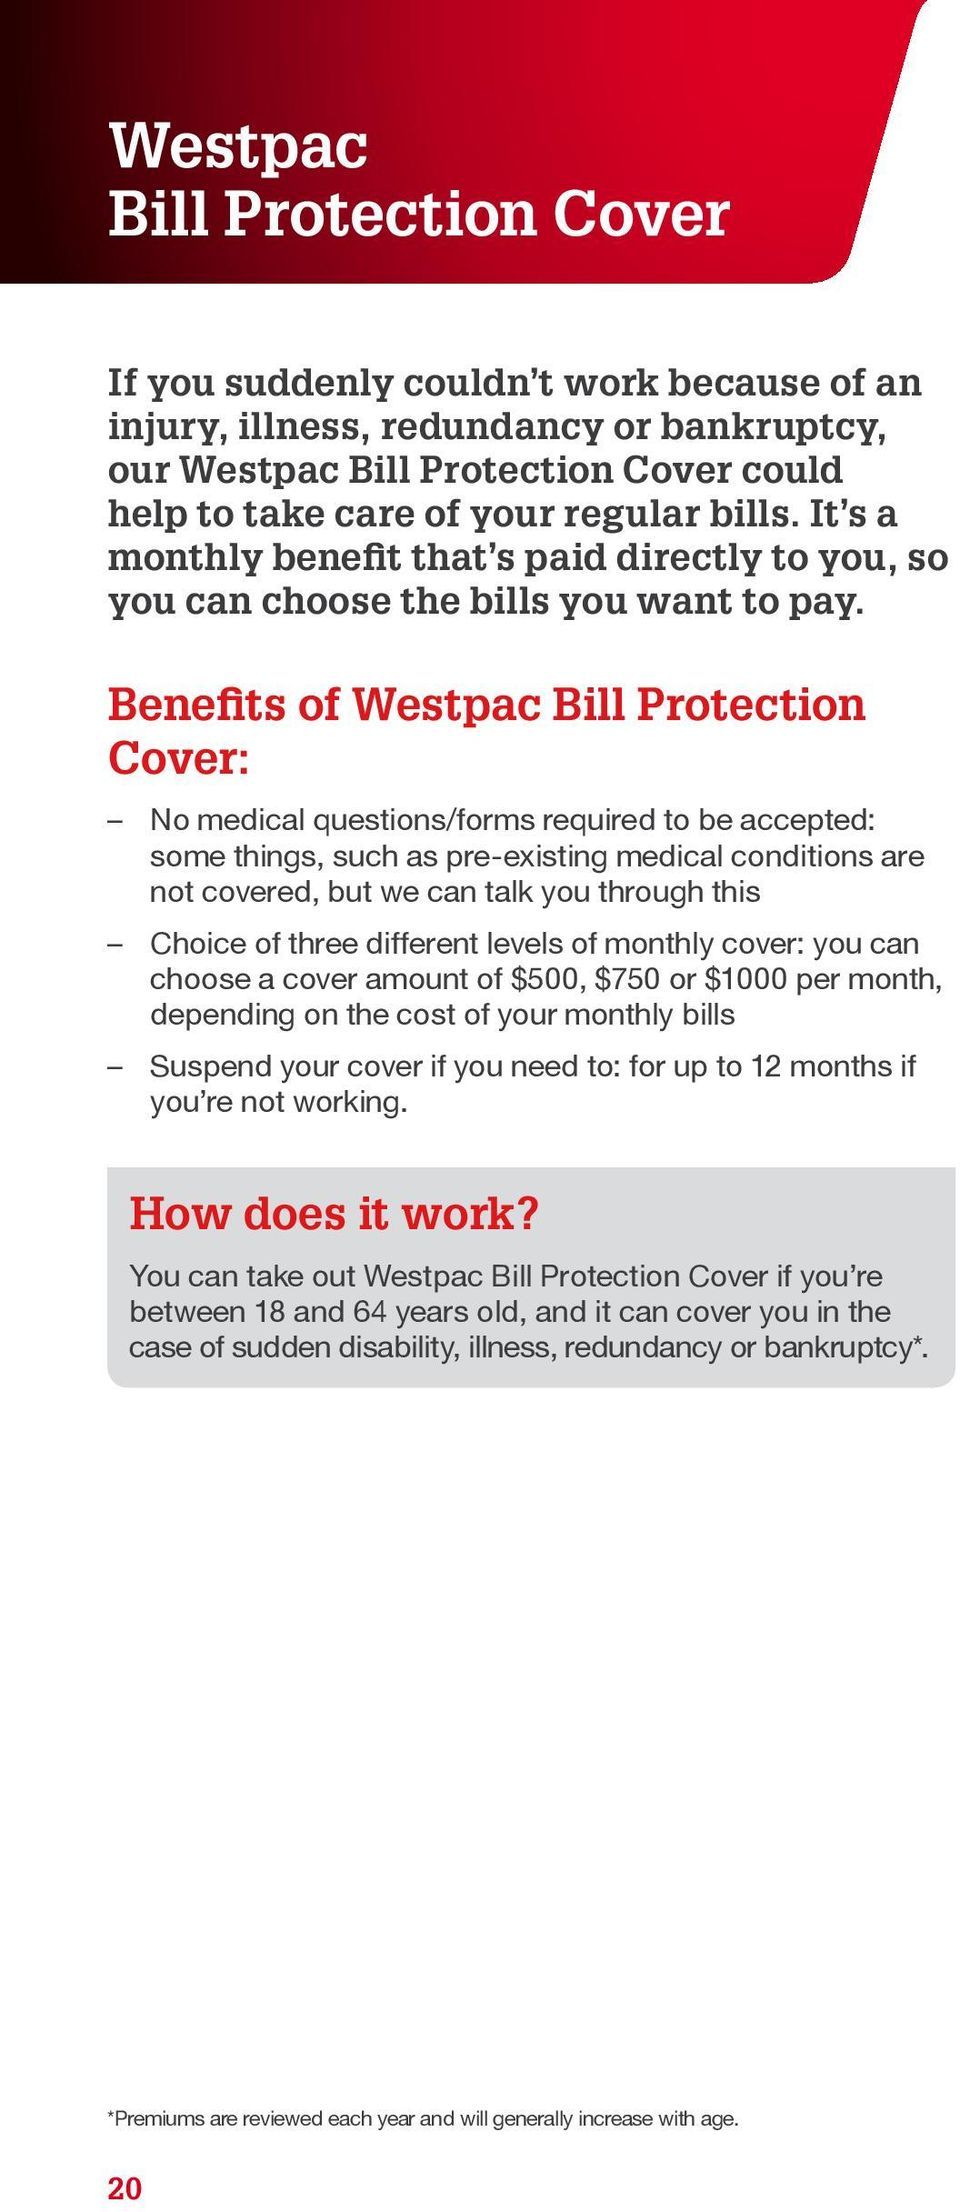 Benefits of Westpac Bill Protection Cover: No medical questions/forms required to be accepted: some things, such as pre-existing medical conditions are not covered, but we can talk you through this